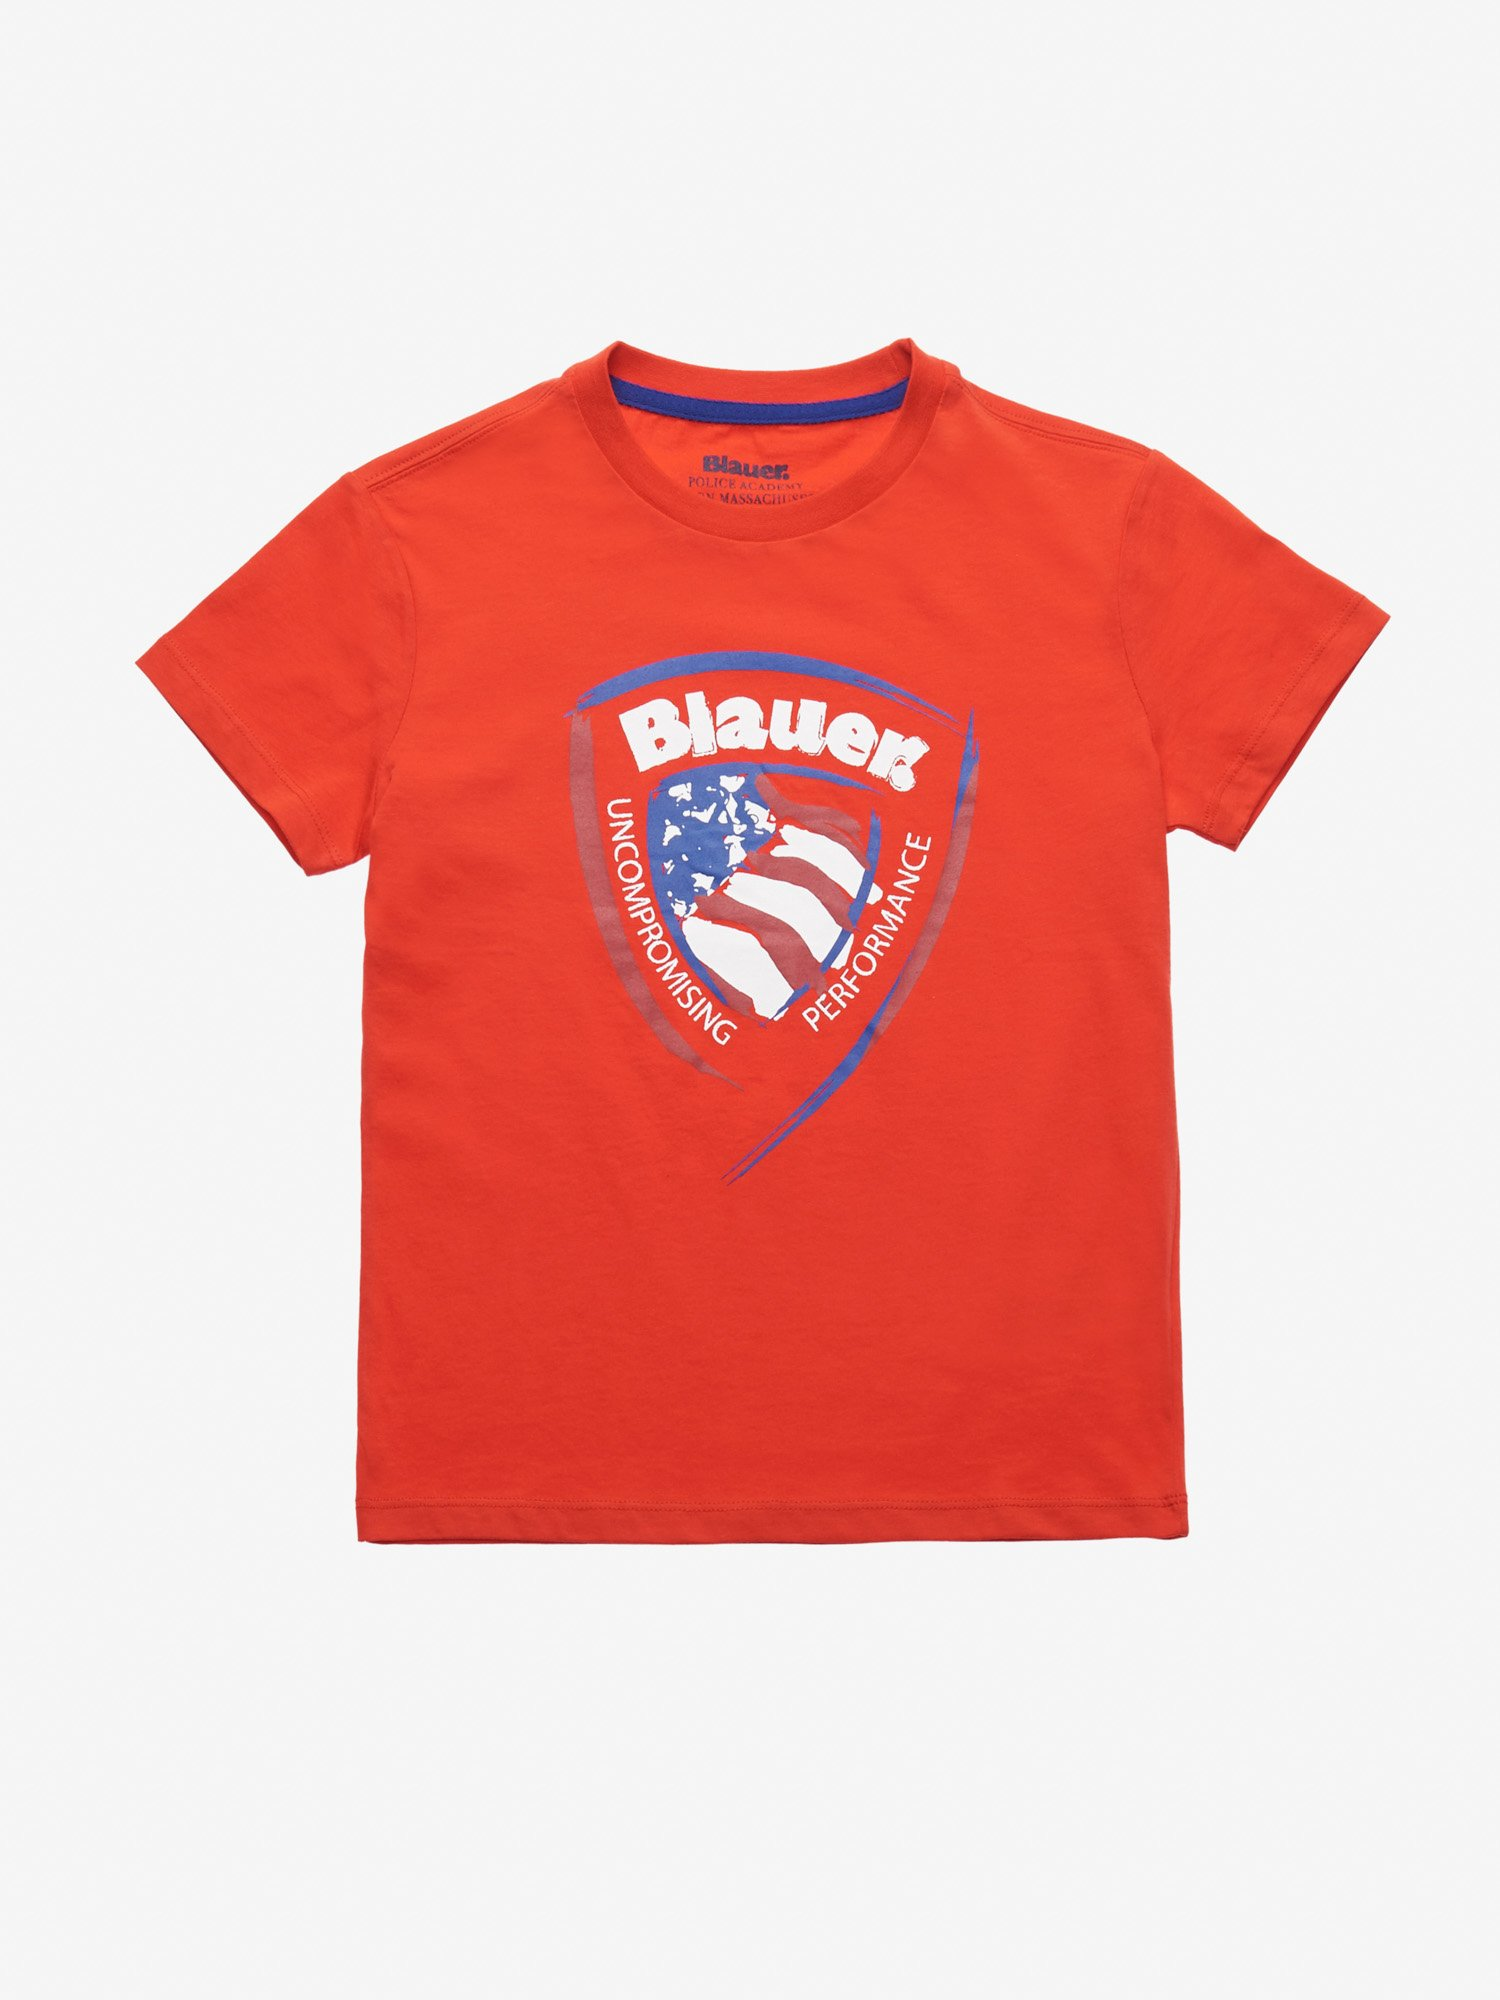 T-SHIRT JUNIOR SCUDO BLAUER - Blauer